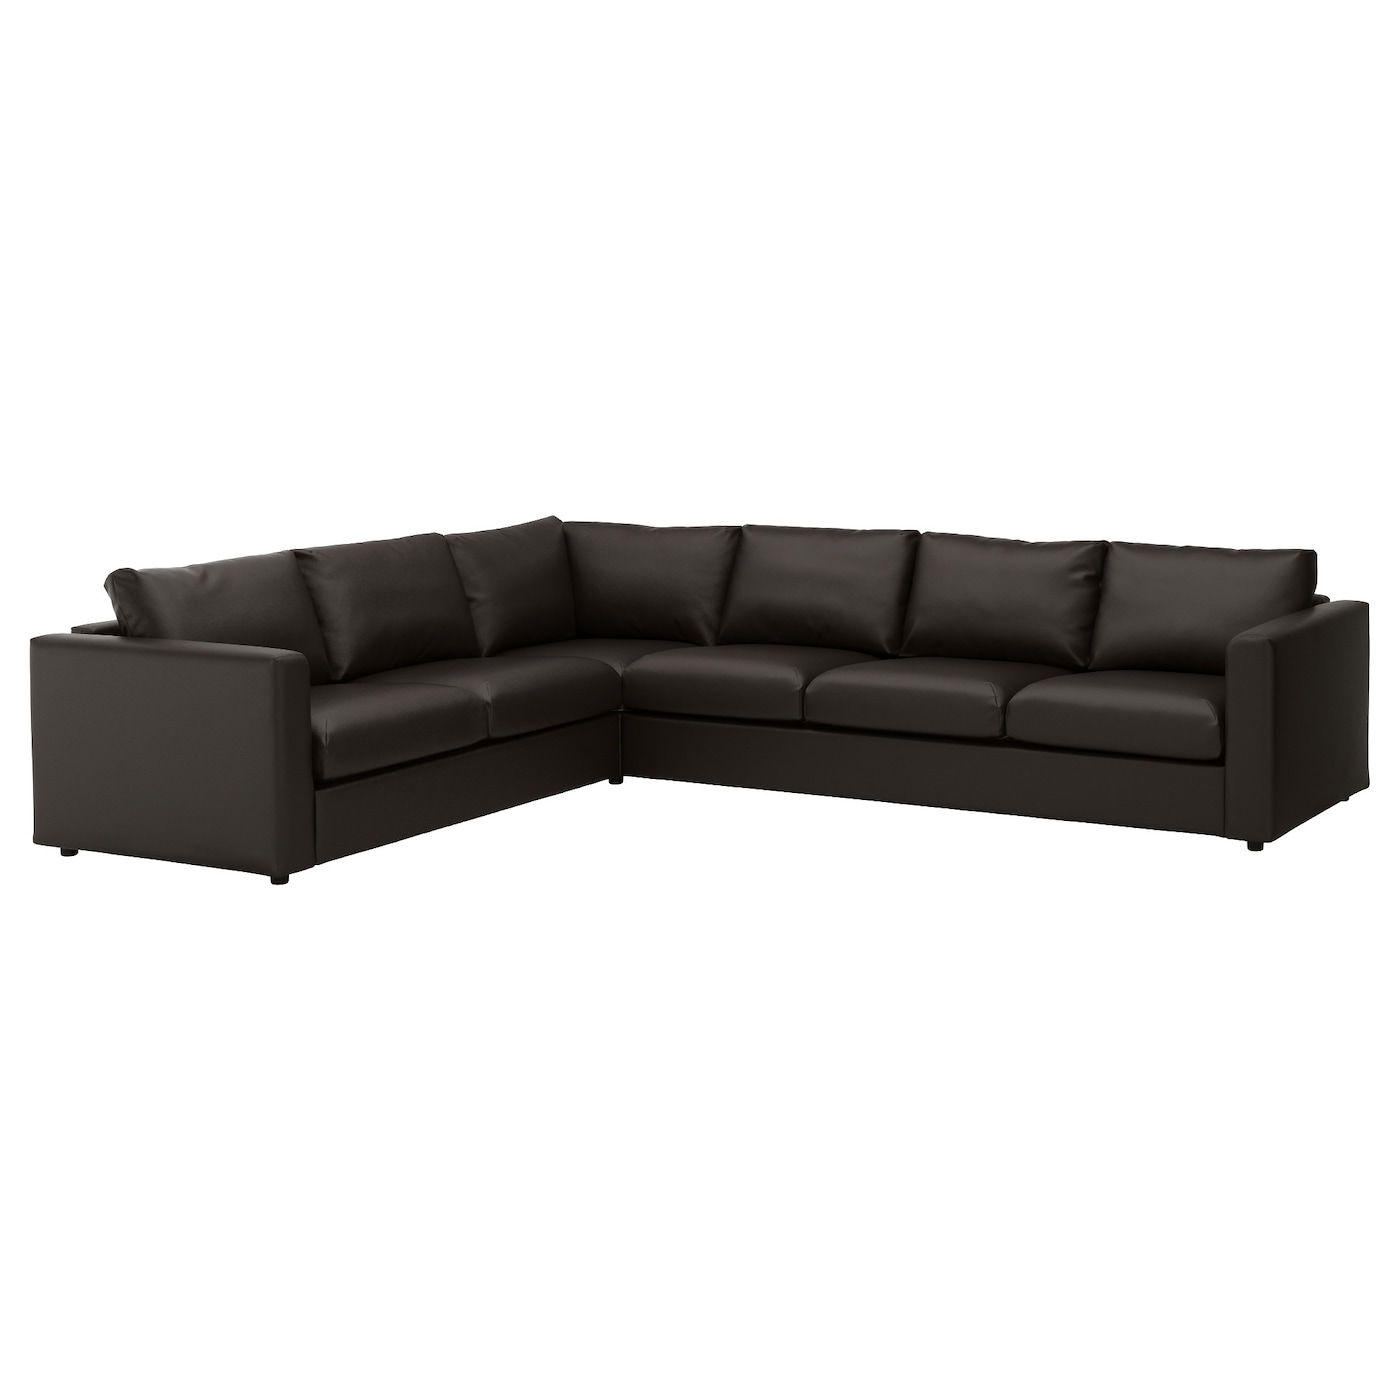 leather & coated fabric sofas | ikea